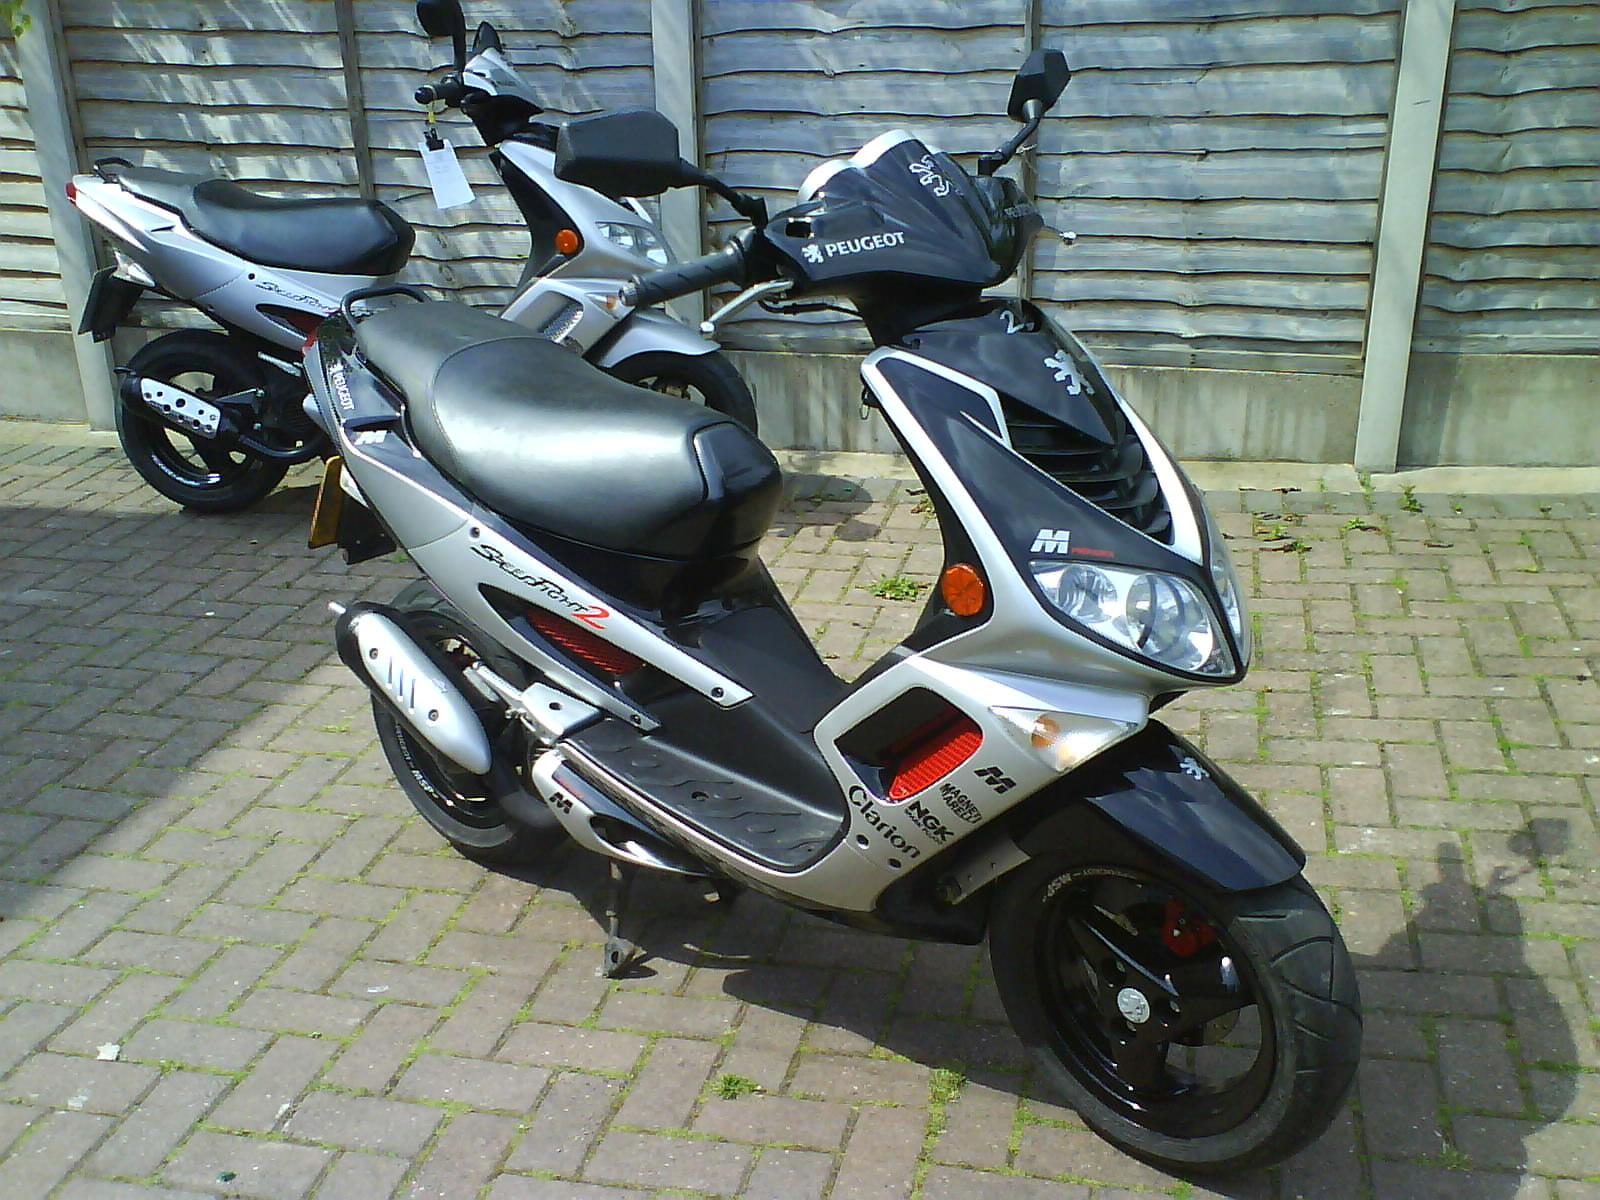 2002 peugeot speedfight 2 50 pics specs and information. Black Bedroom Furniture Sets. Home Design Ideas